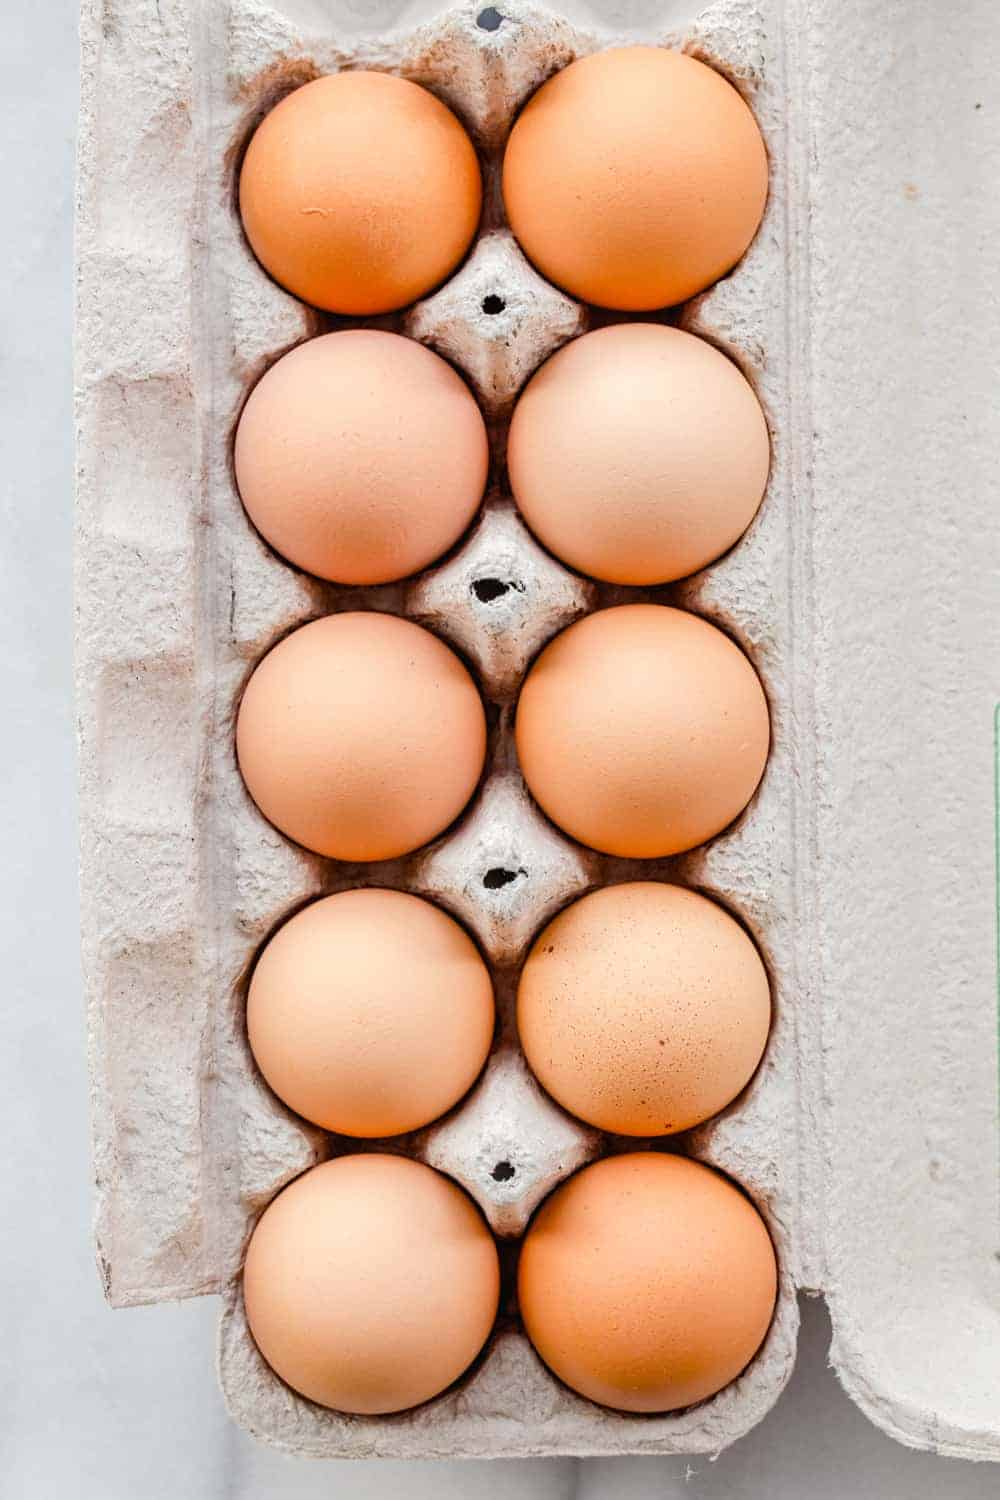 How to quickly bring eggs to room temperature.